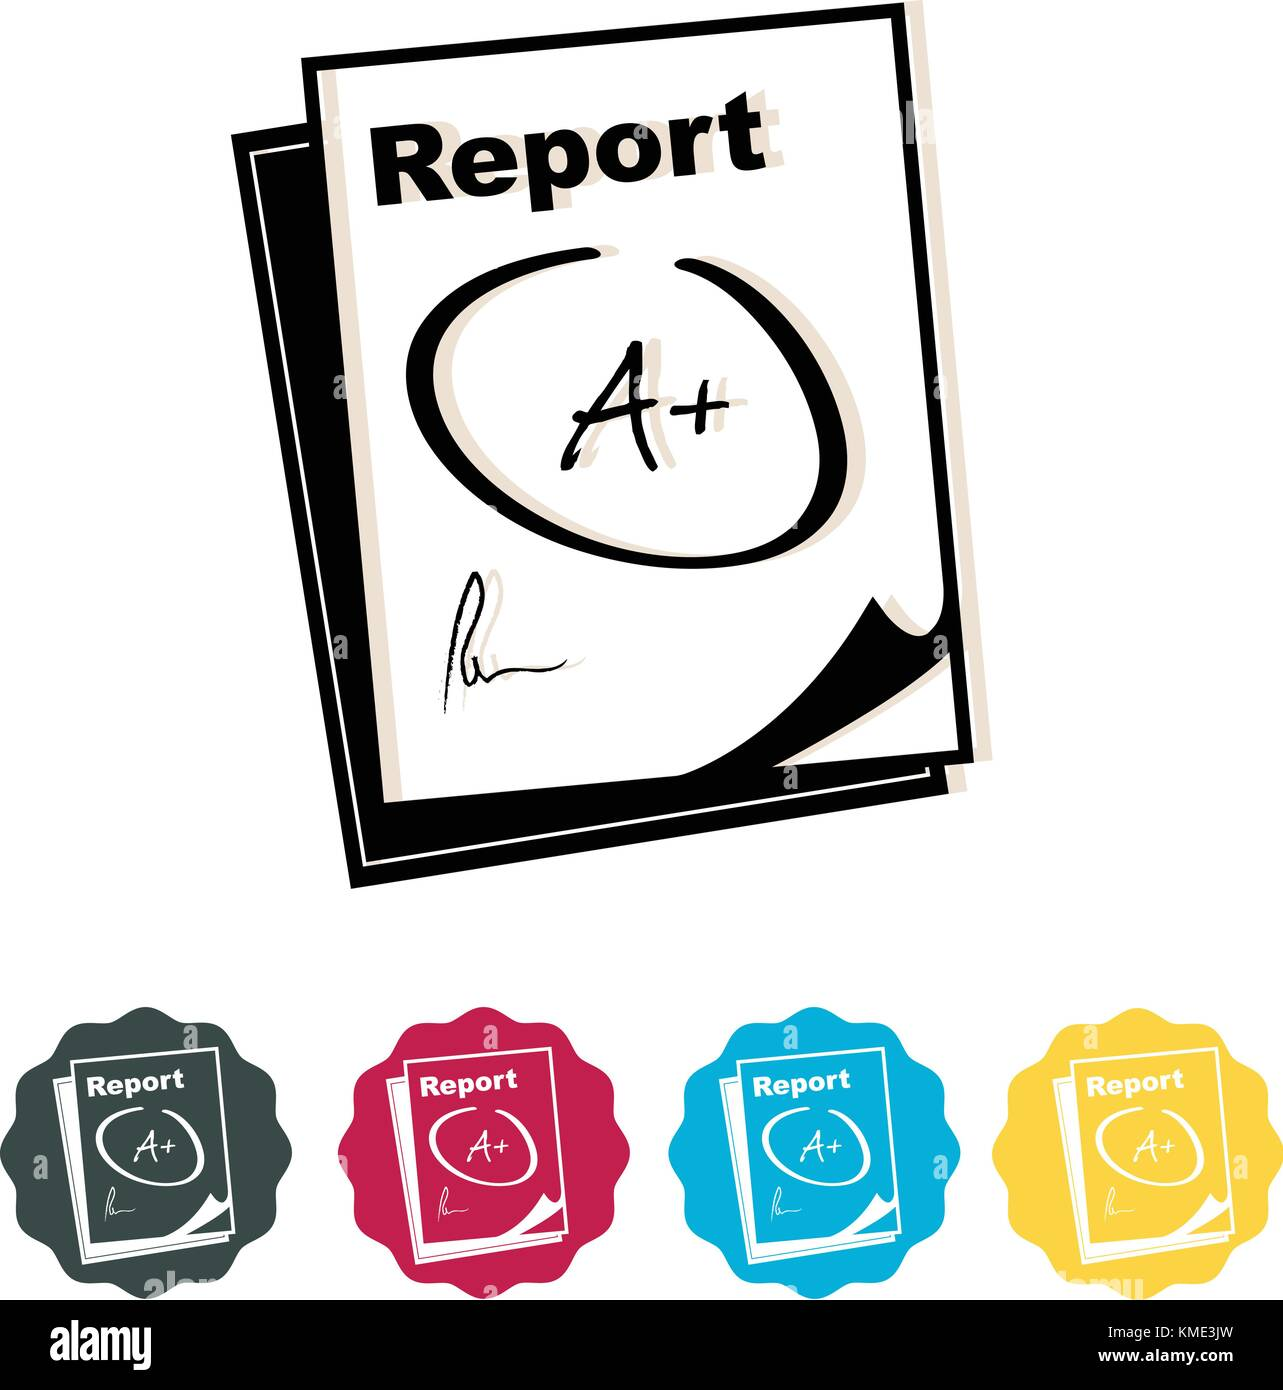 Report Card - Icon - Illustration as EPS 10 File - Stock Vector